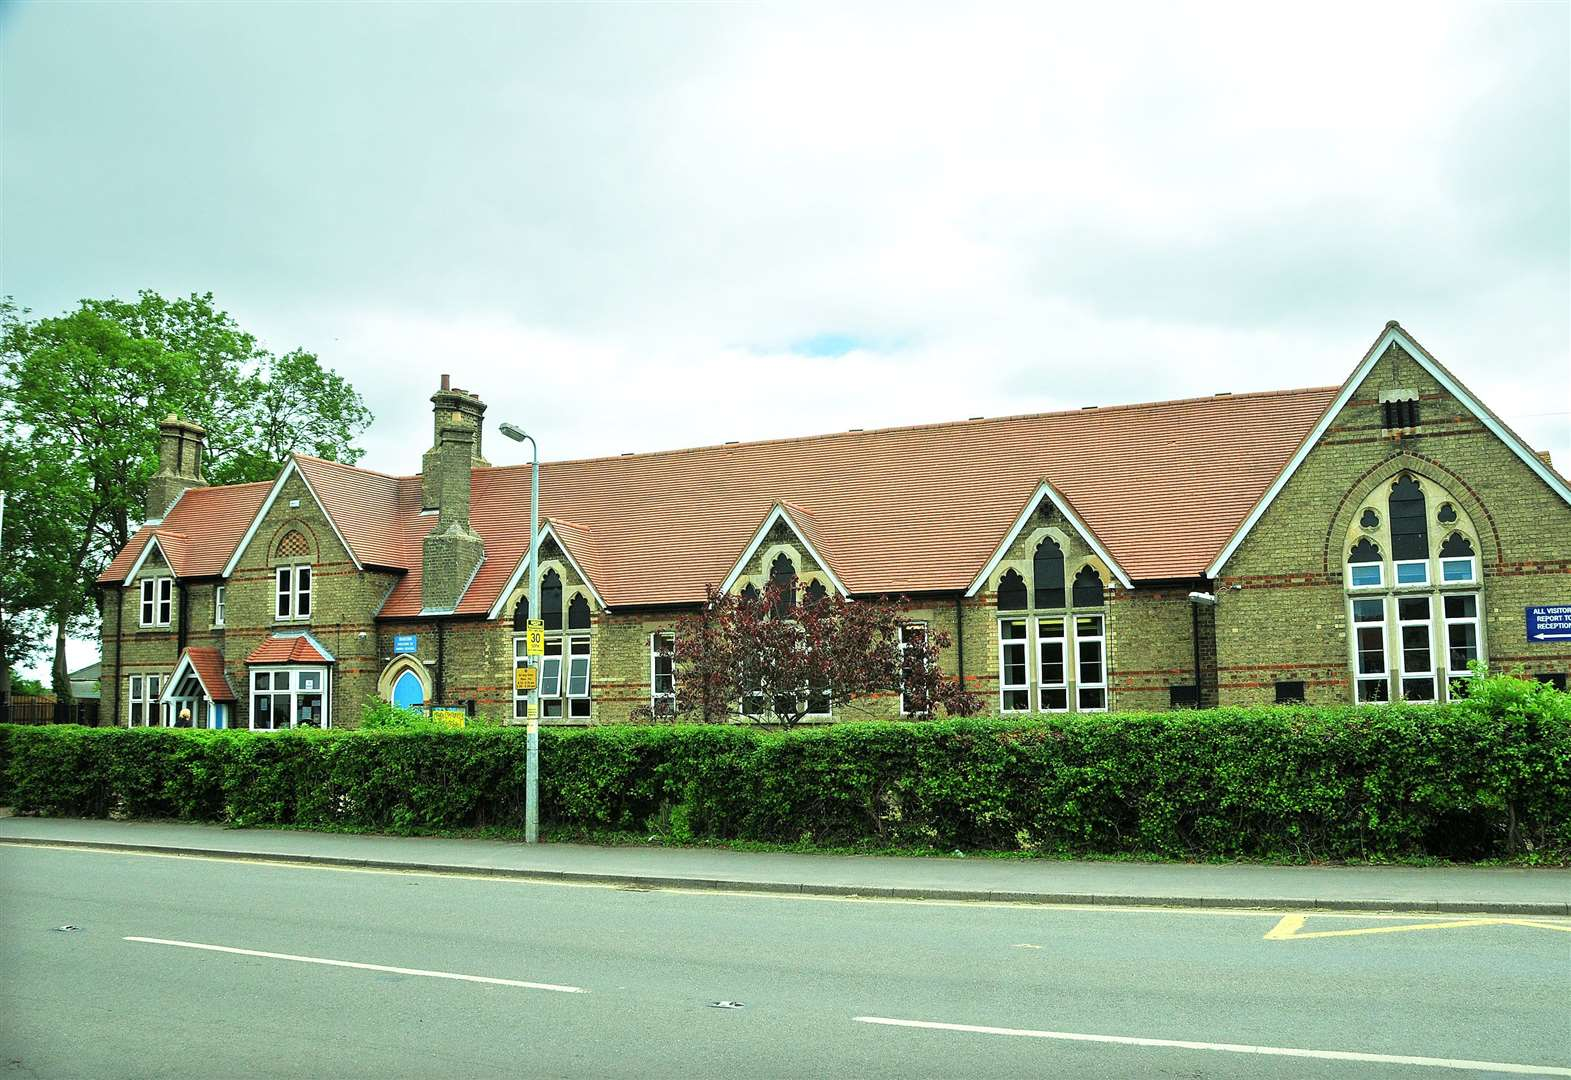 Manea Primary School has been rated as still 'Good' following an inspection by Ofsted